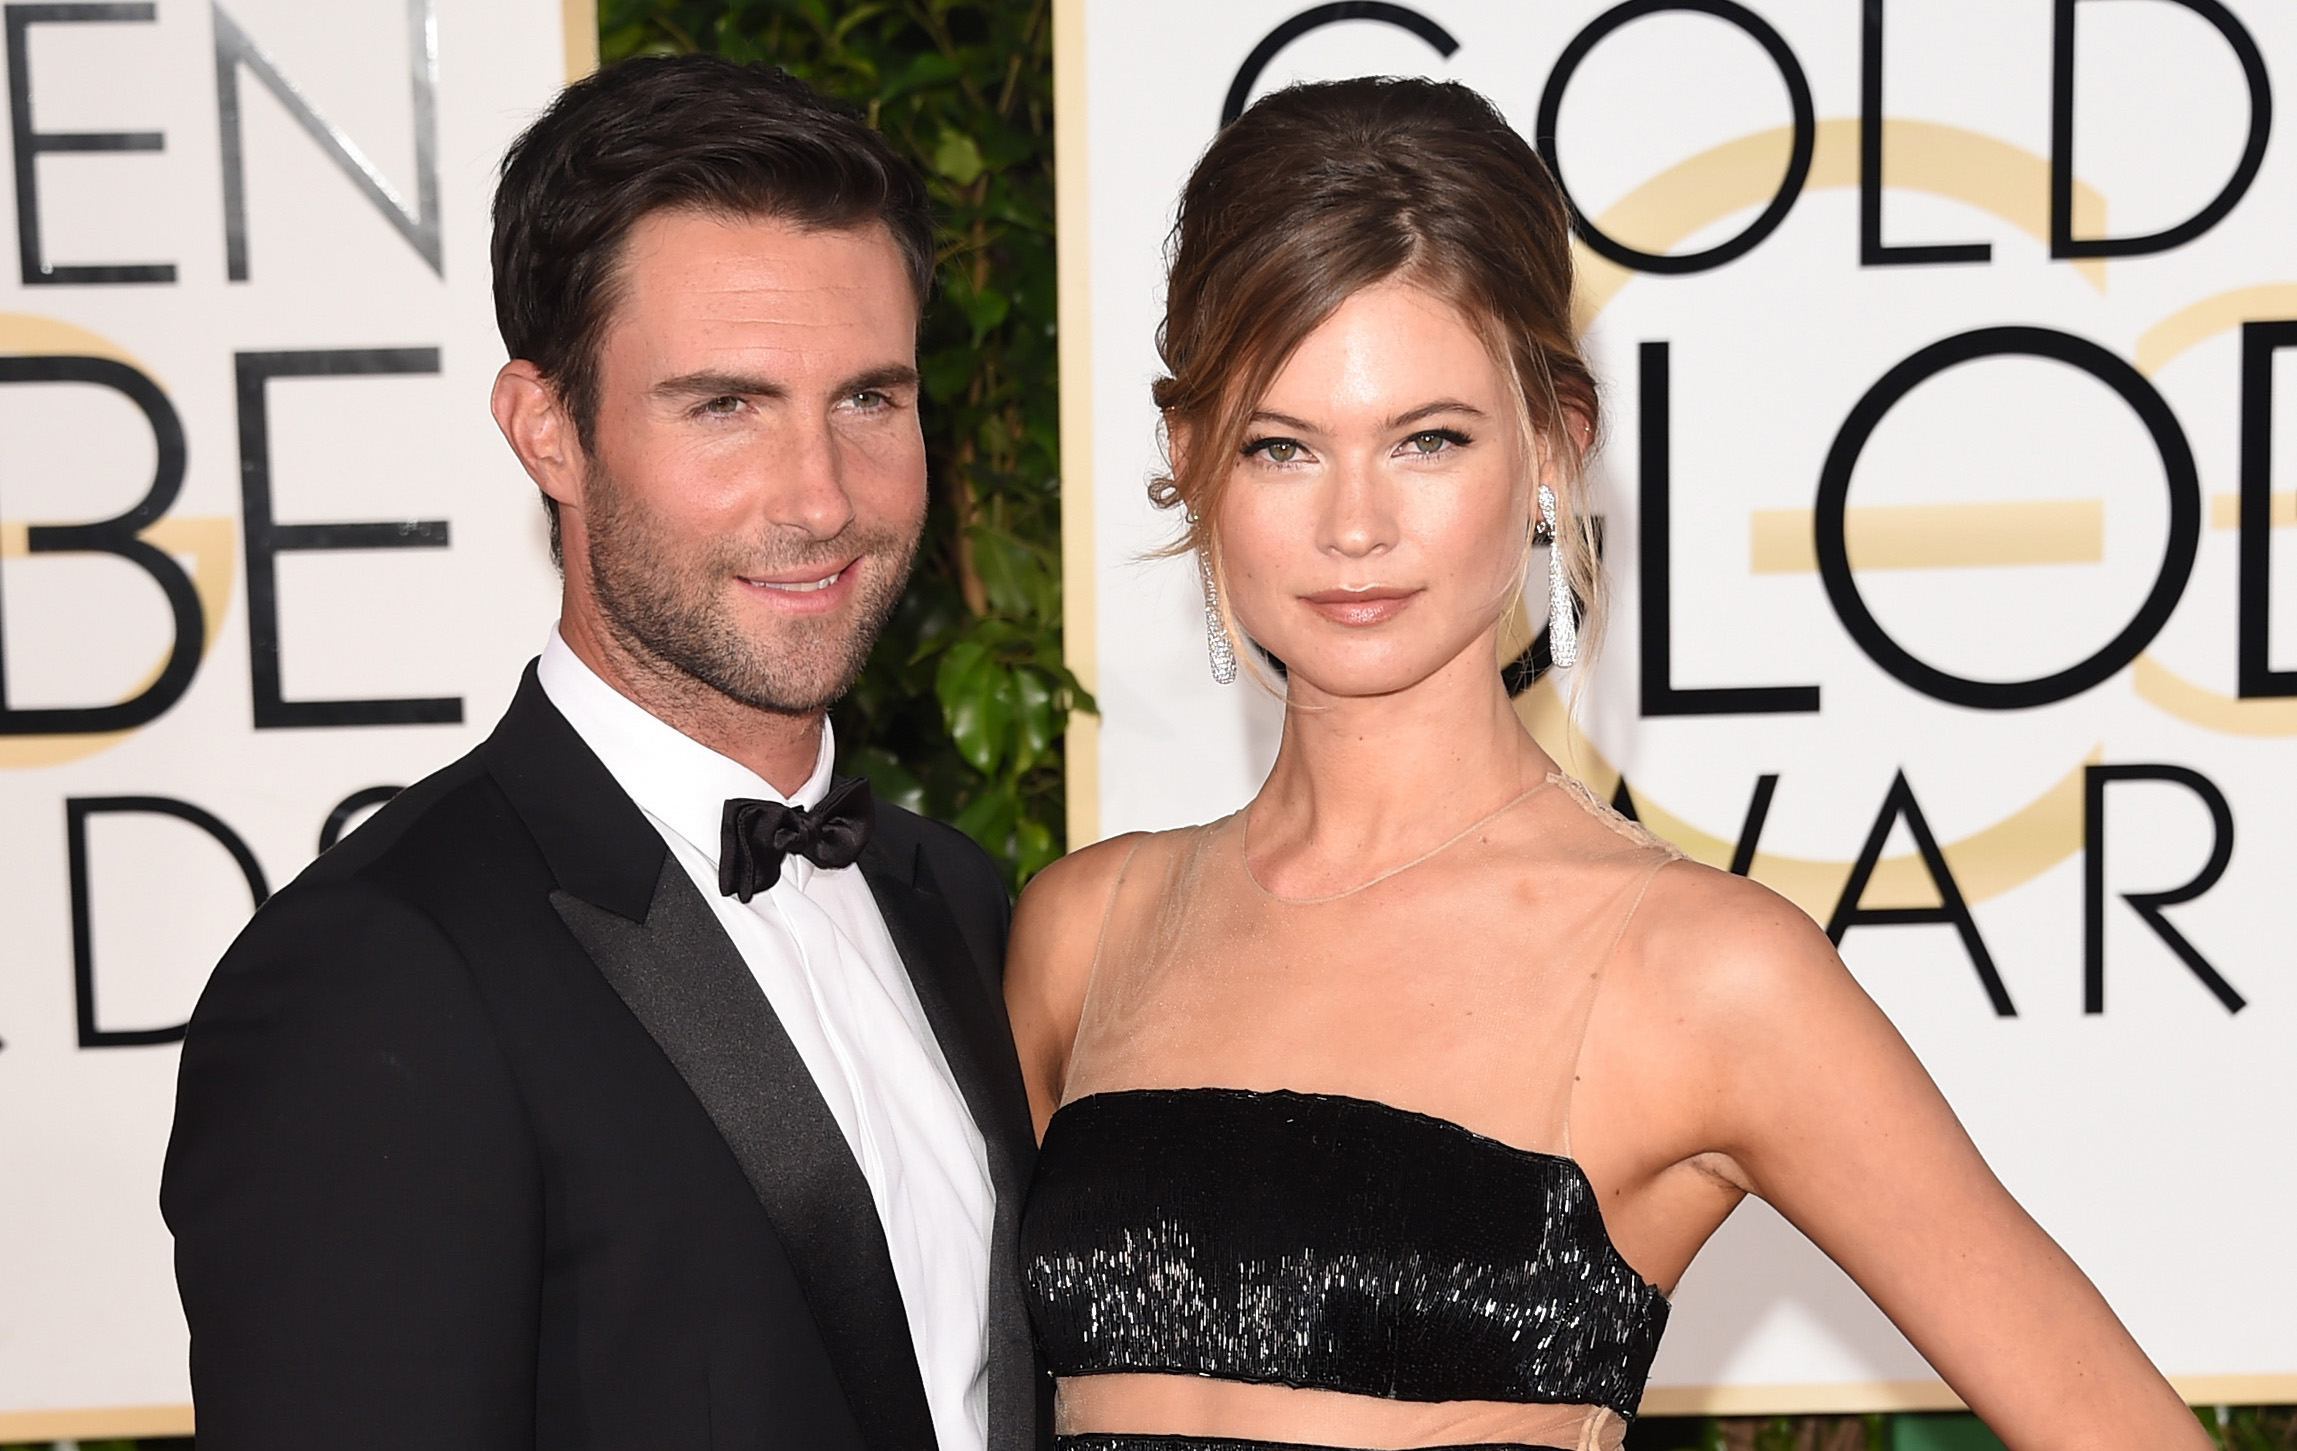 Adam Levine Surprised Behati Prinsloo With Roses After The